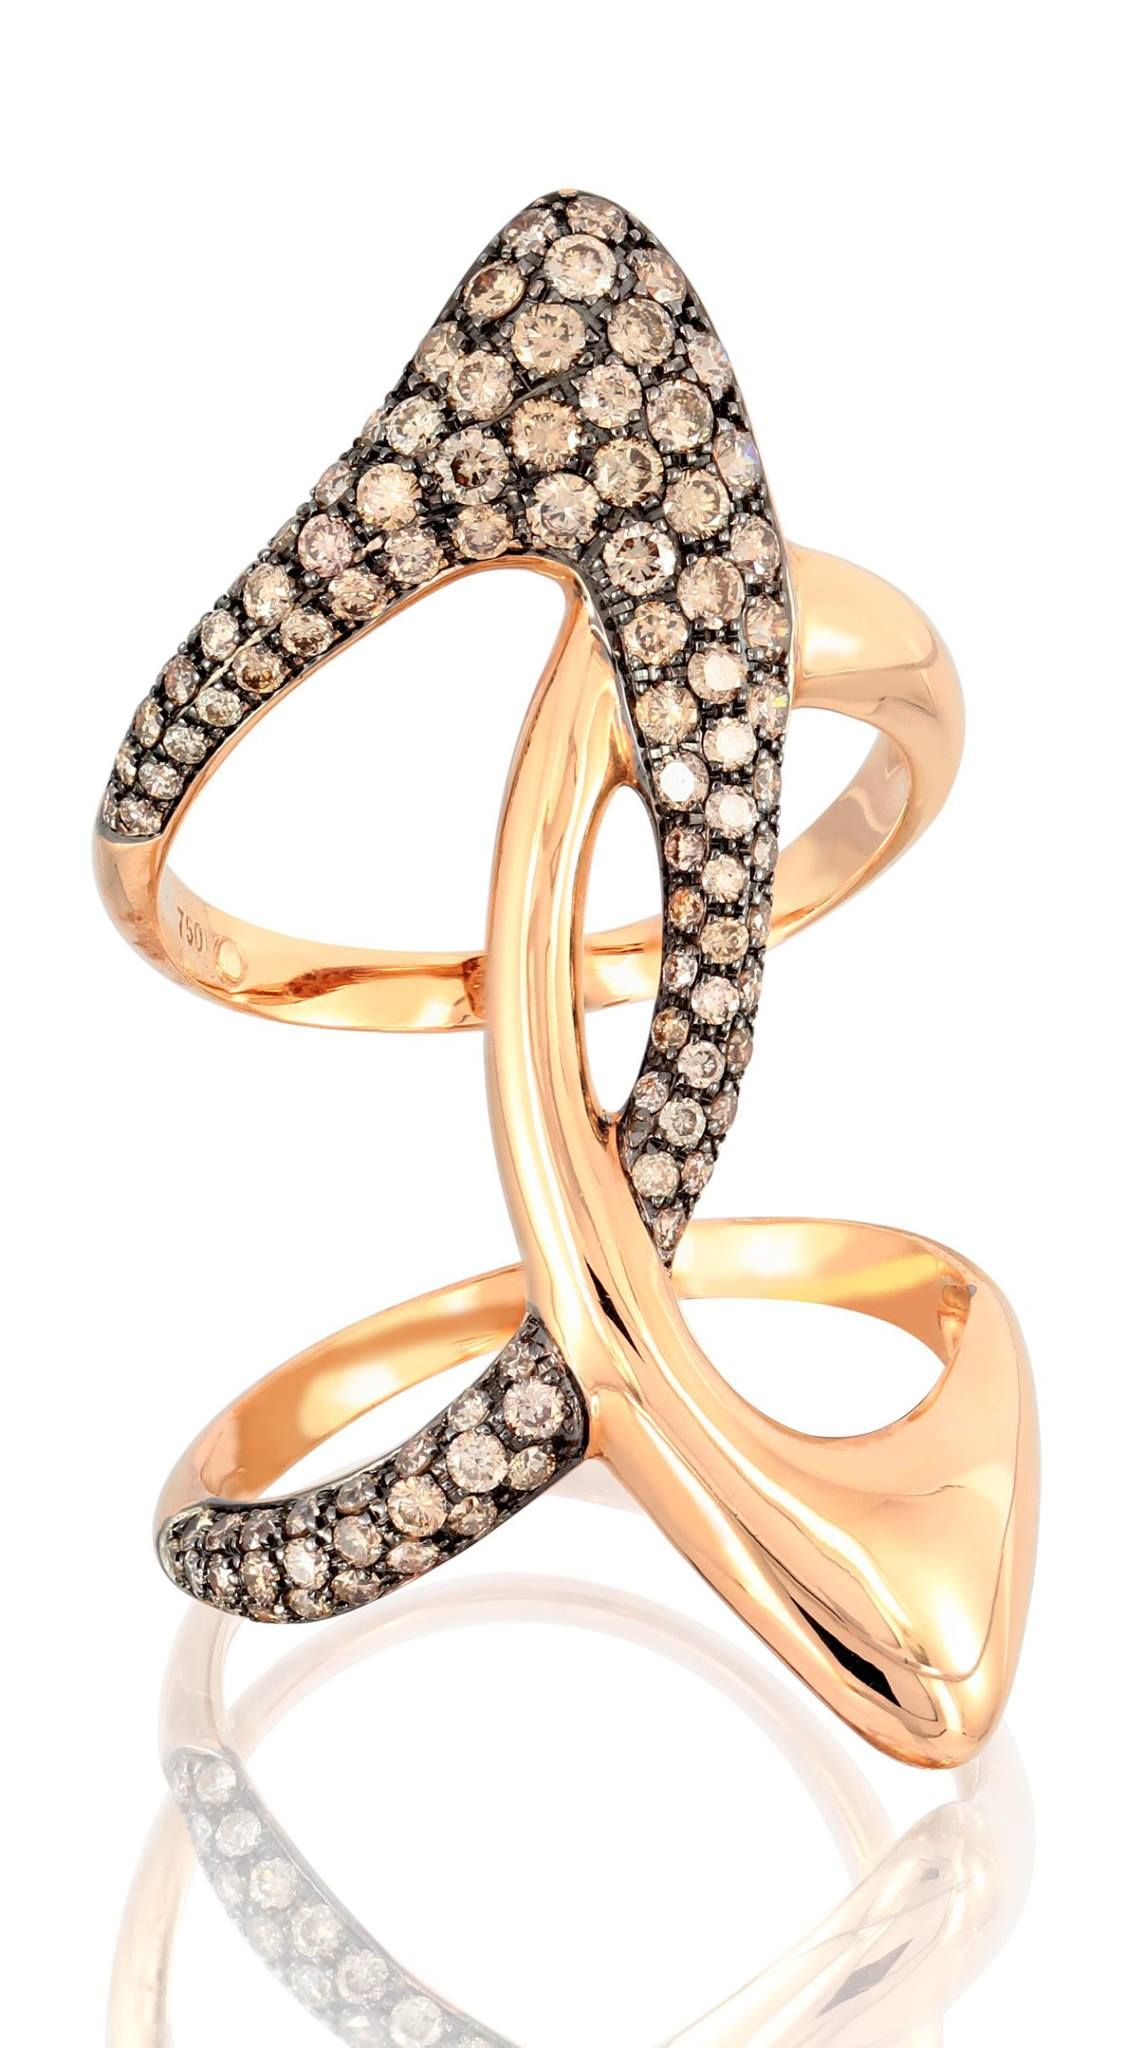 My Etho Collection is a combination of white, black and brown #diamonds in everyday pieces that fit even the most demanding lifestyle. #EthoMaria #hautecouture #hautejoaillerie #ring